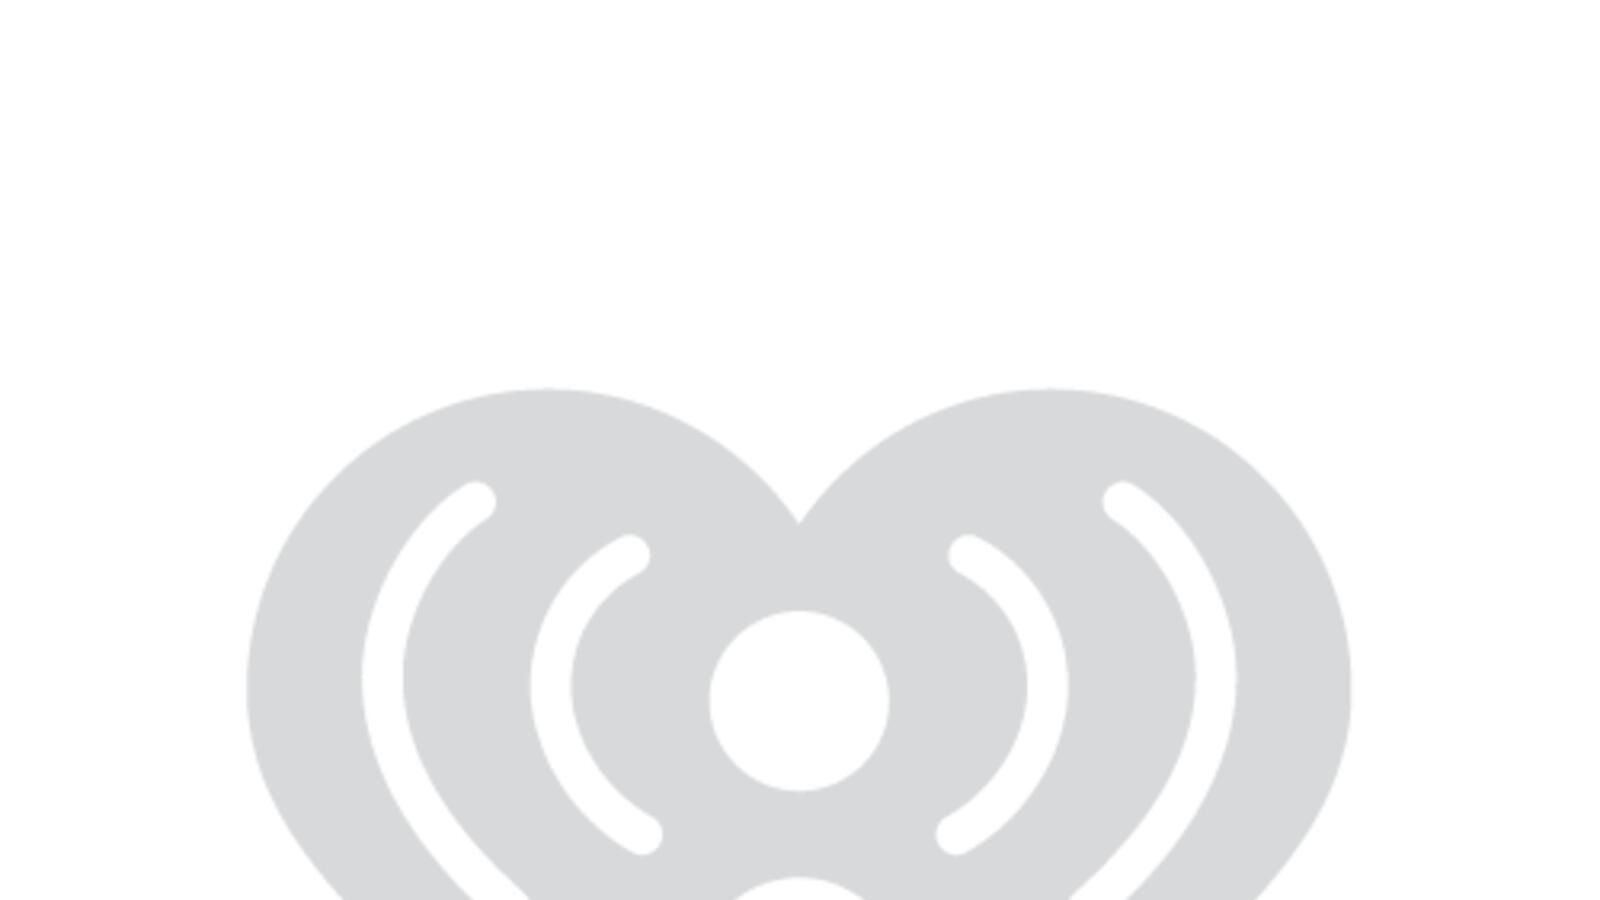 Jaguars' Coach Urban Meyer Busted With Young Blonde Grinding On Him At Bar